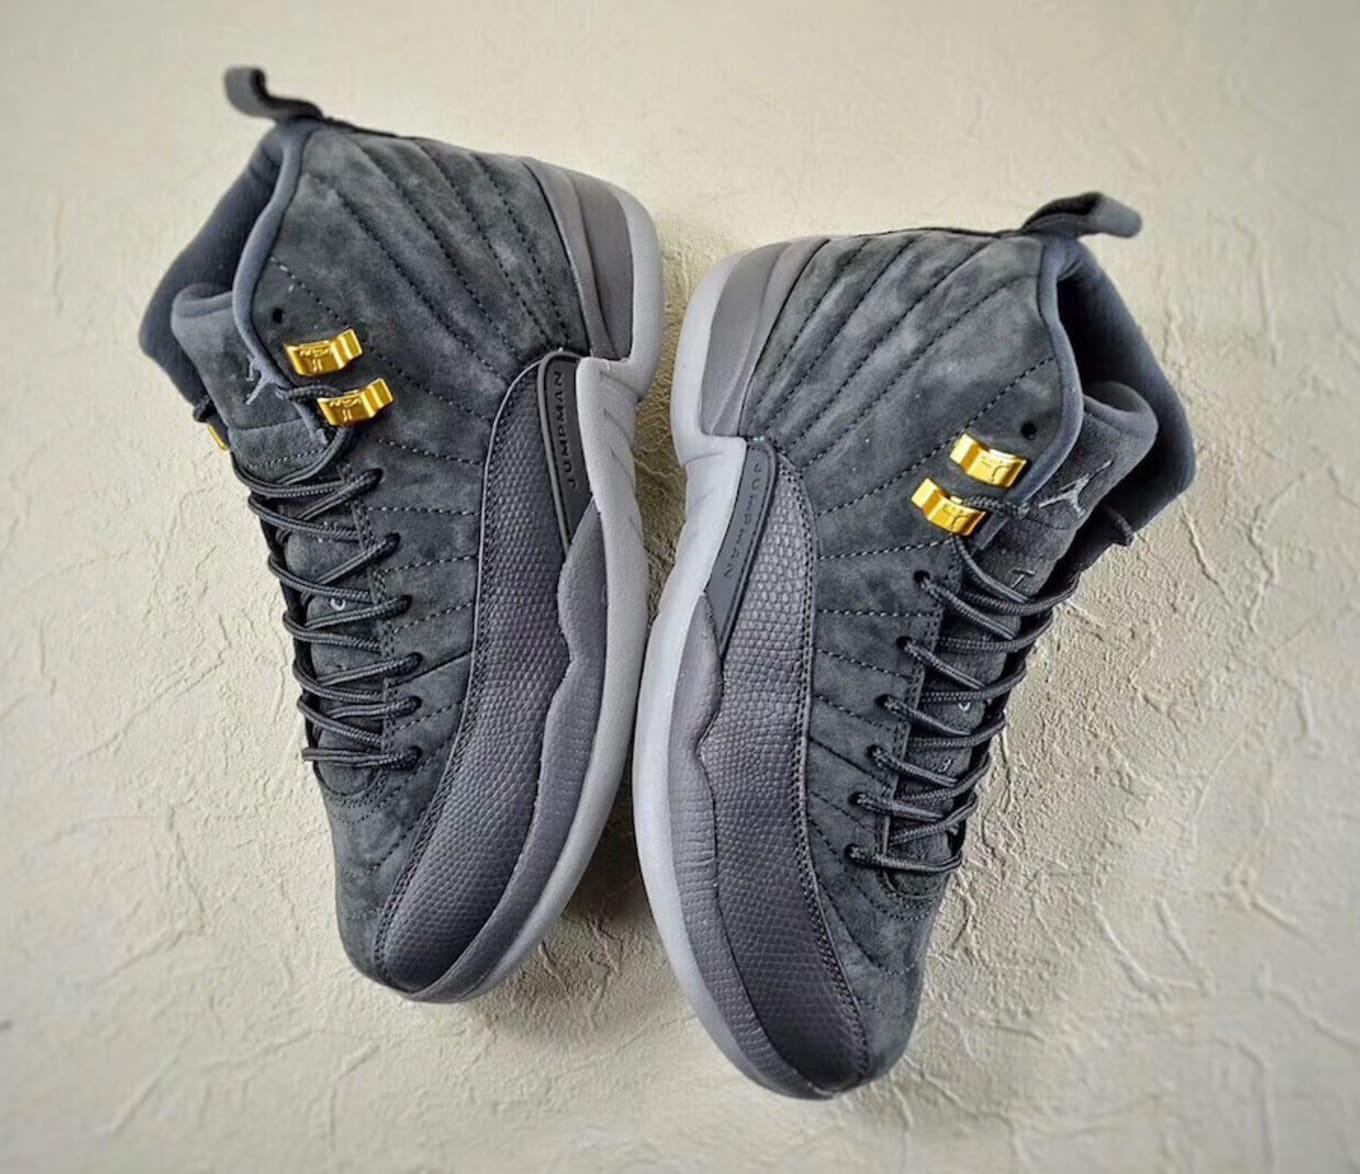 a1e3ba82c87  Dark Grey  Air Jordan 12 Retro Set for October Release